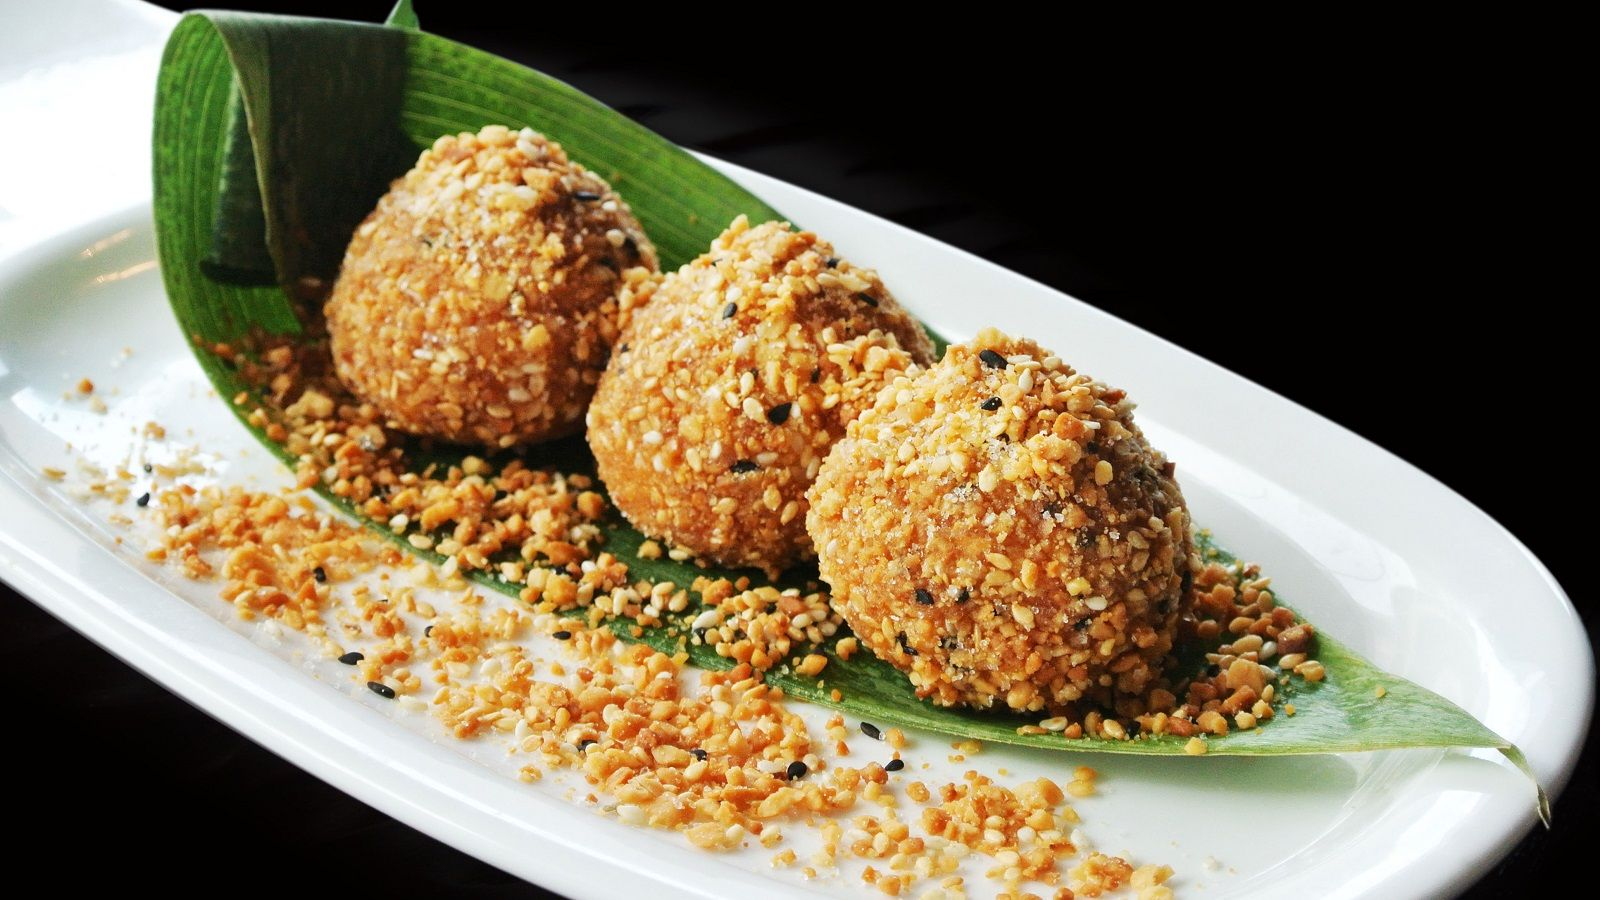 Jian Dui - Sesame Glutinous Rice Balls with Filling